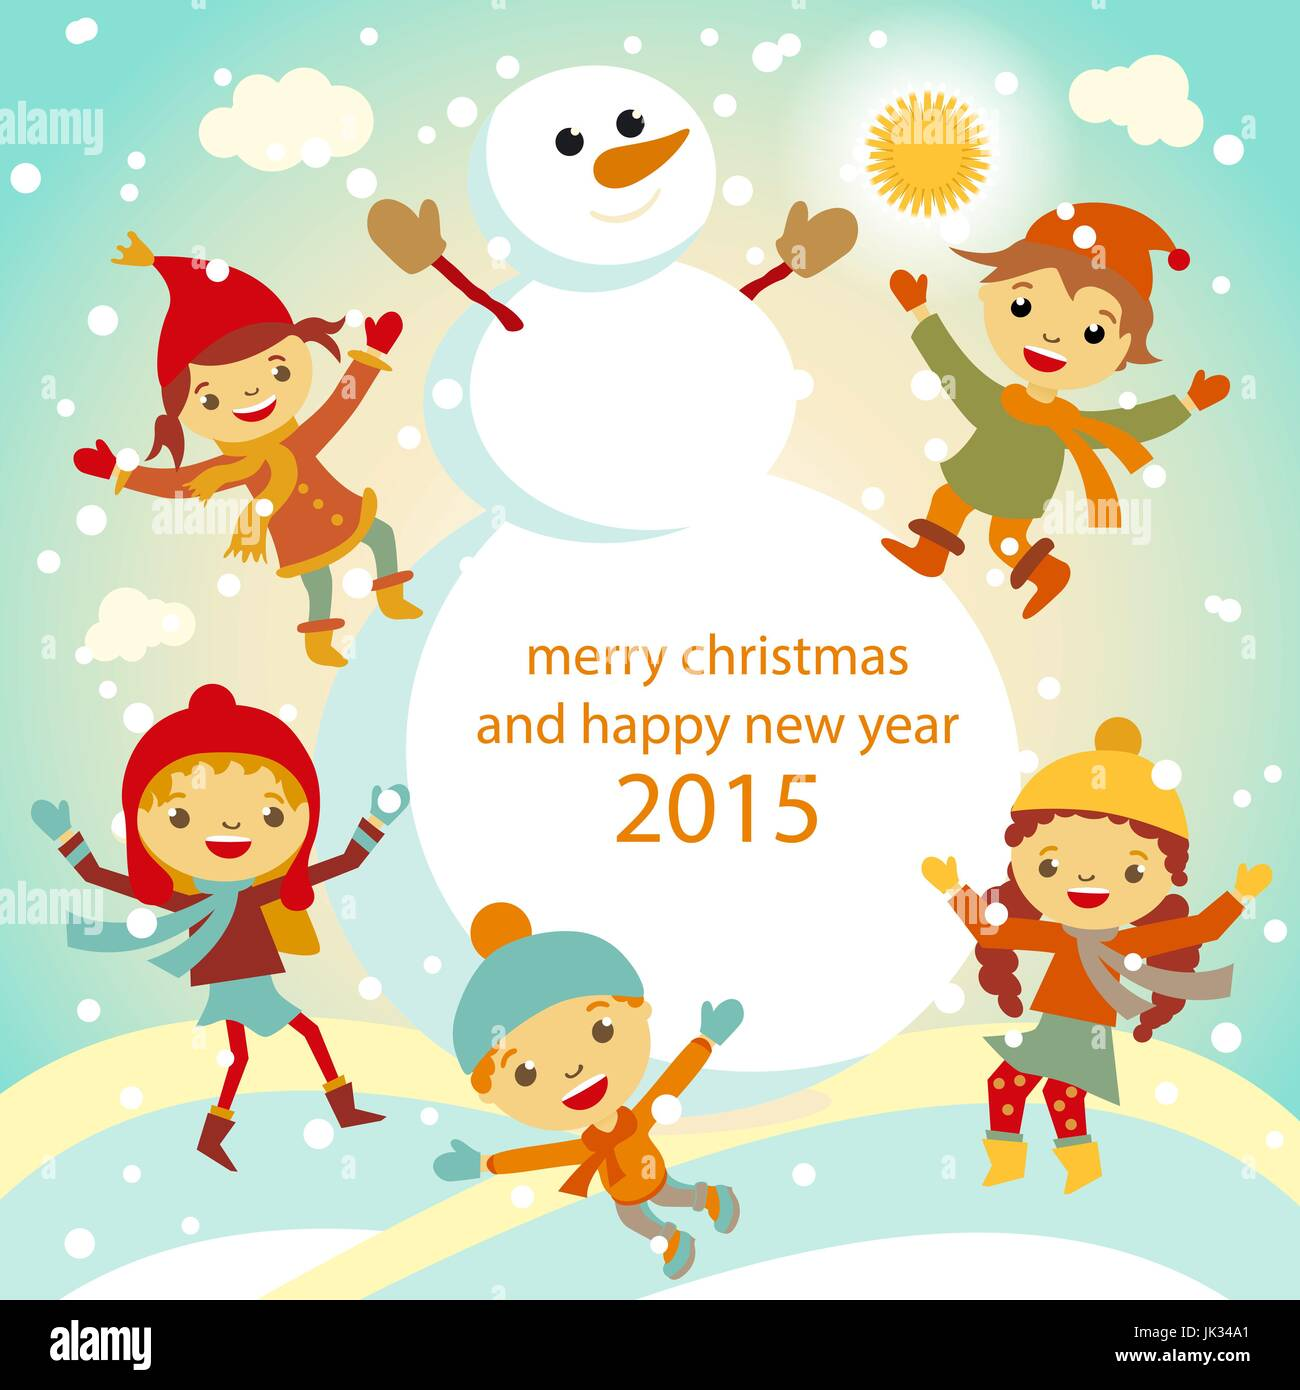 winter kids merry christmas and happy new year art